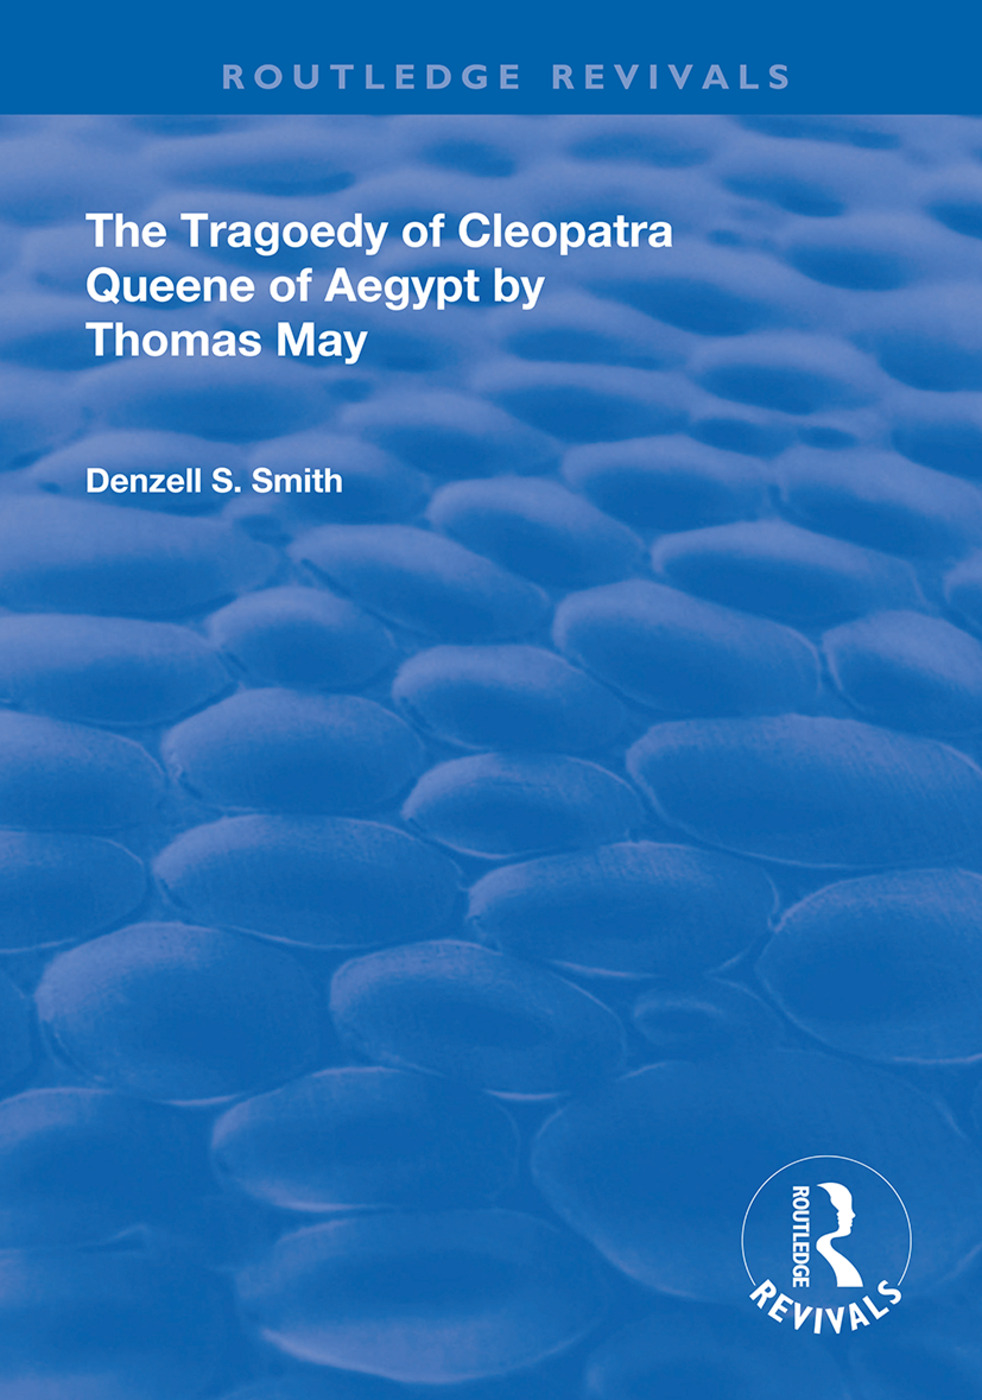 The Tragedy of Cleopatra: Queene of Aegypt book cover